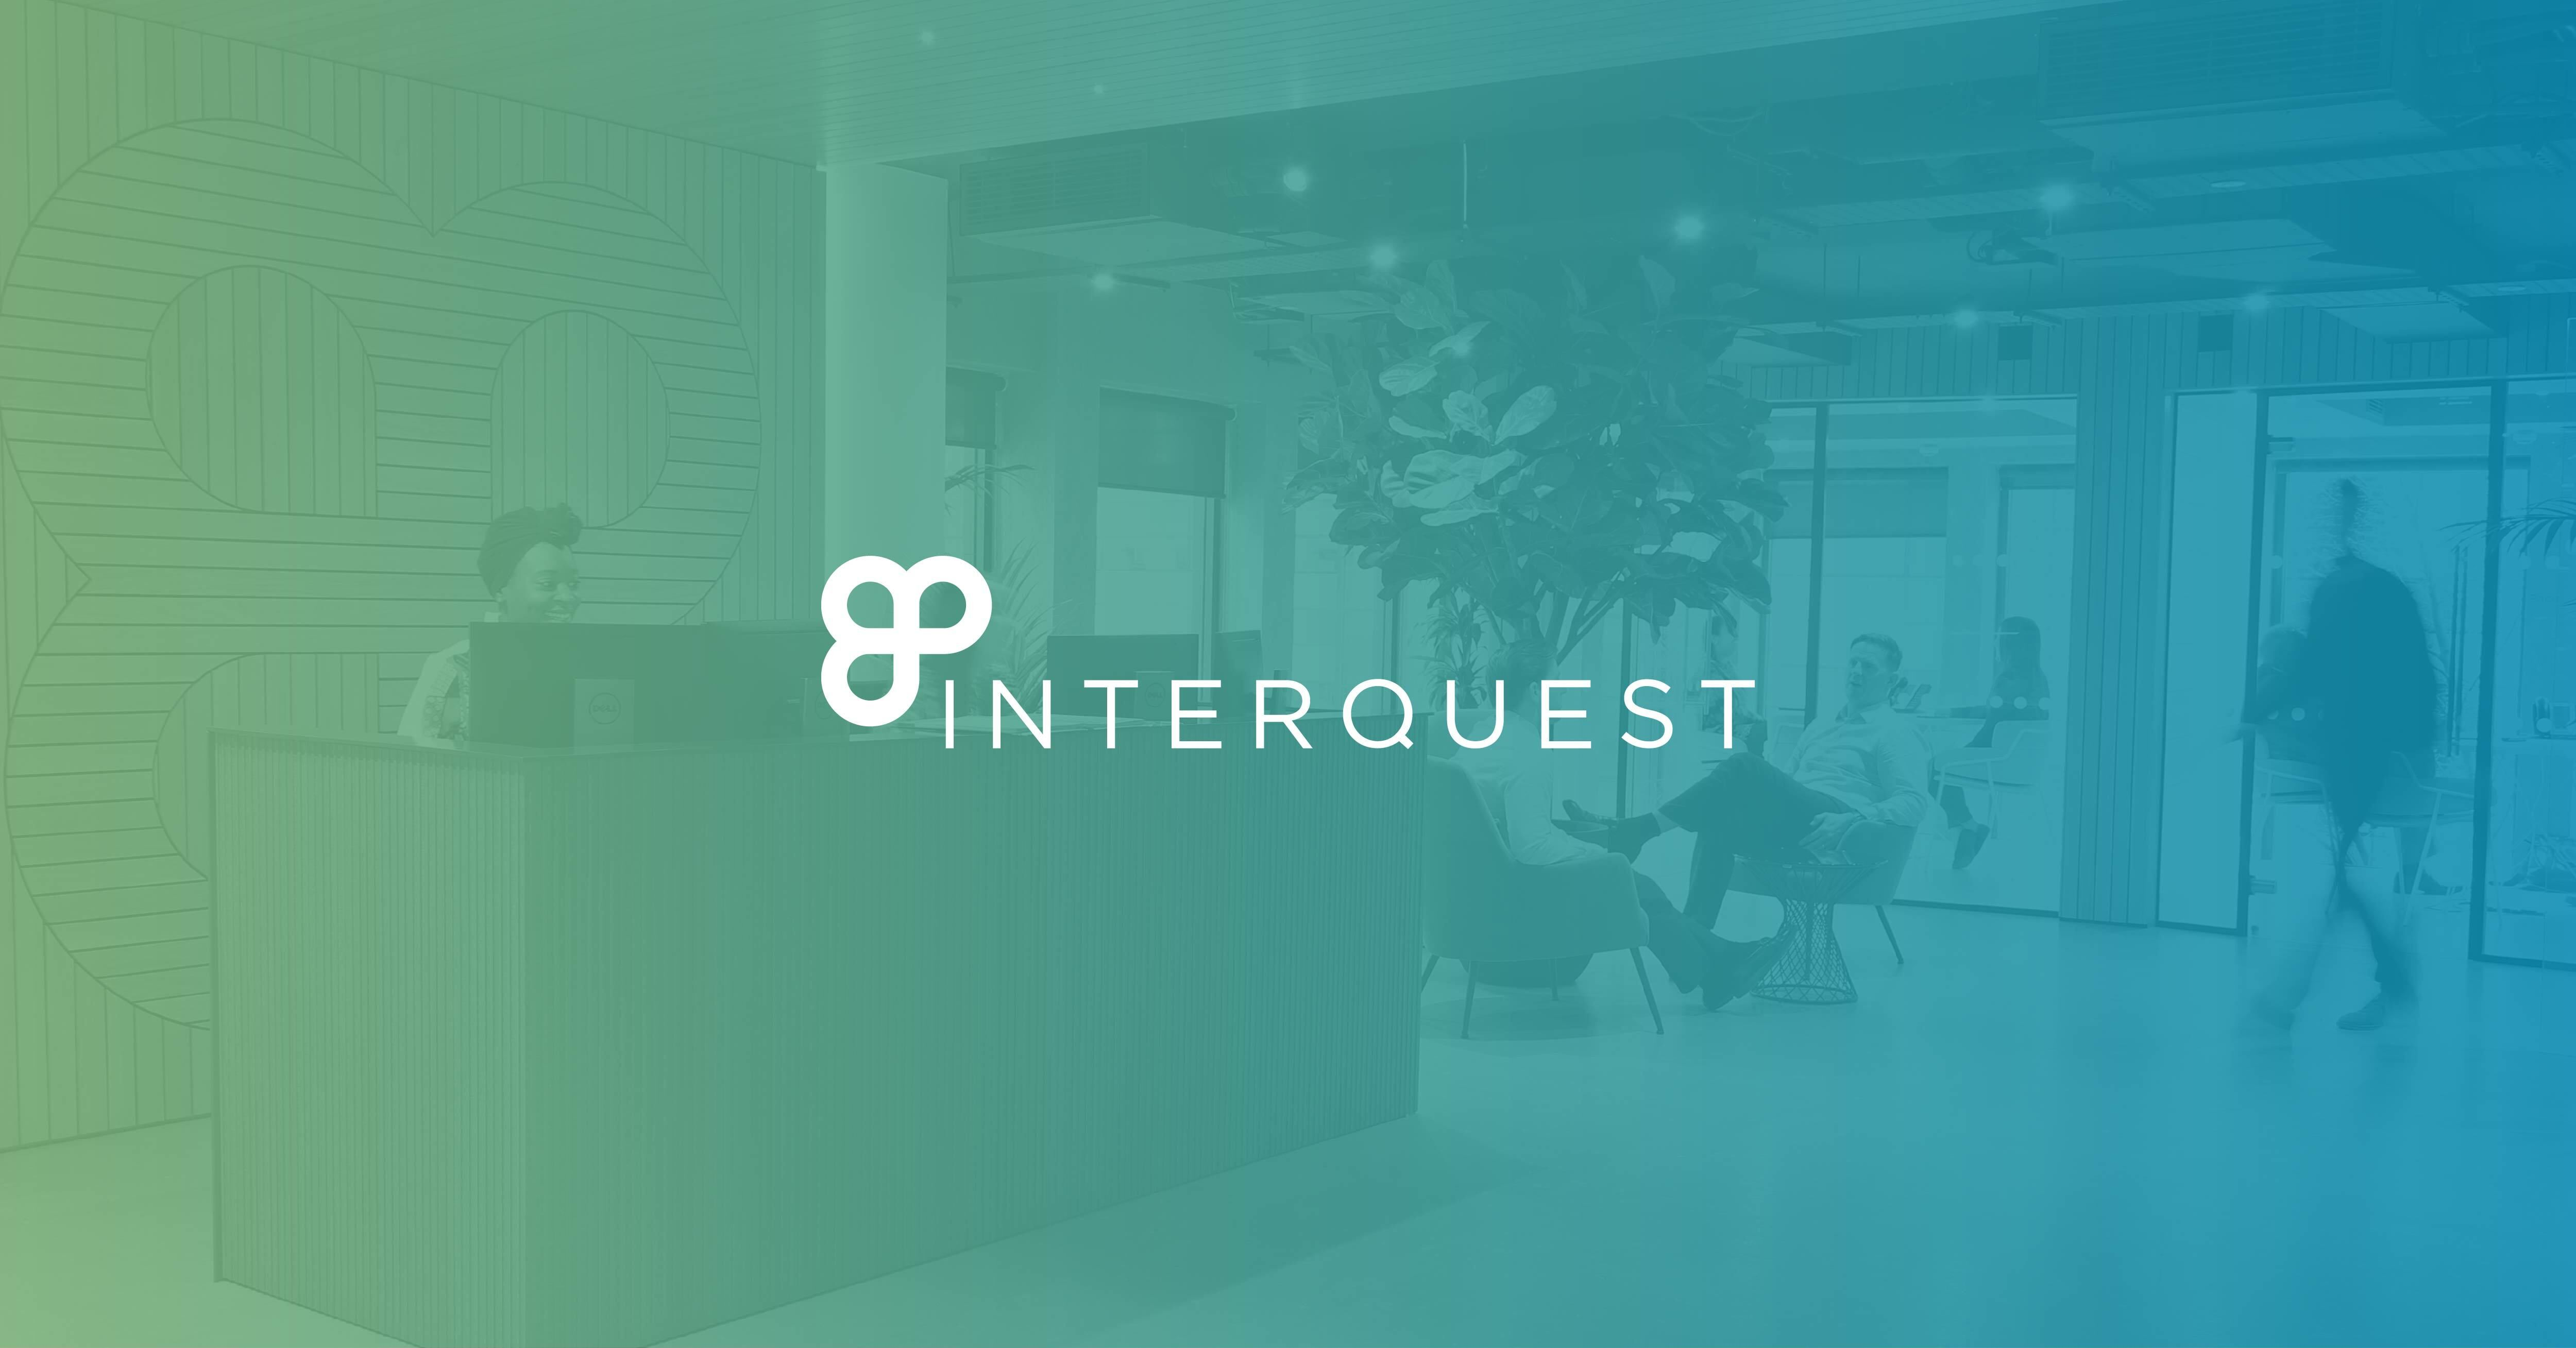 White InterQuest logo on a background image of InterQuest Group's reception area green and blue filter